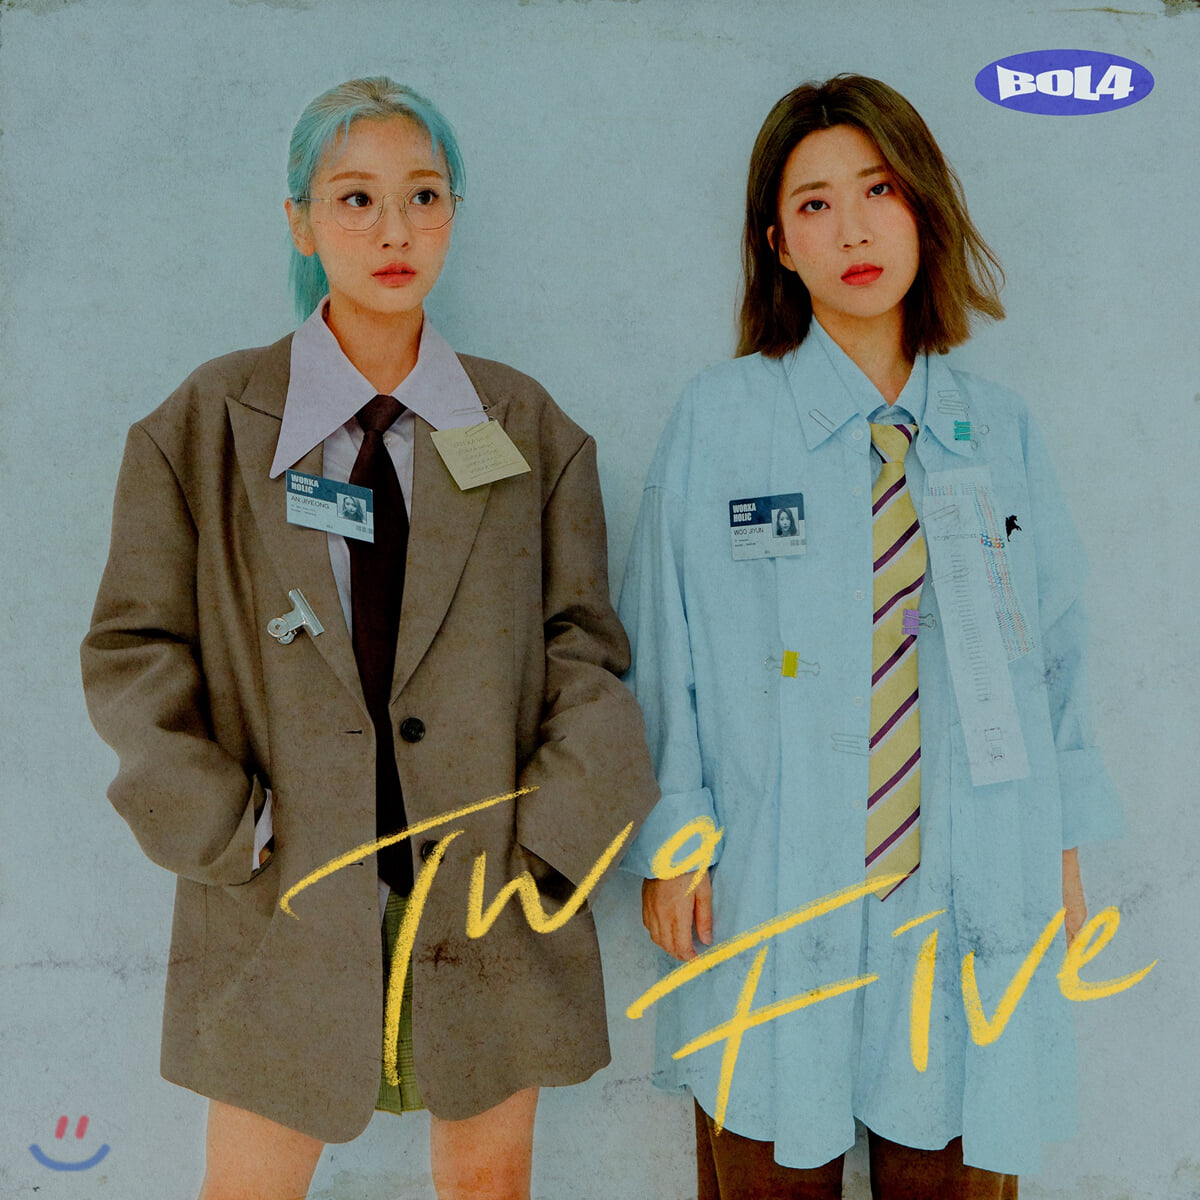 4th Mini Album「Two Five」